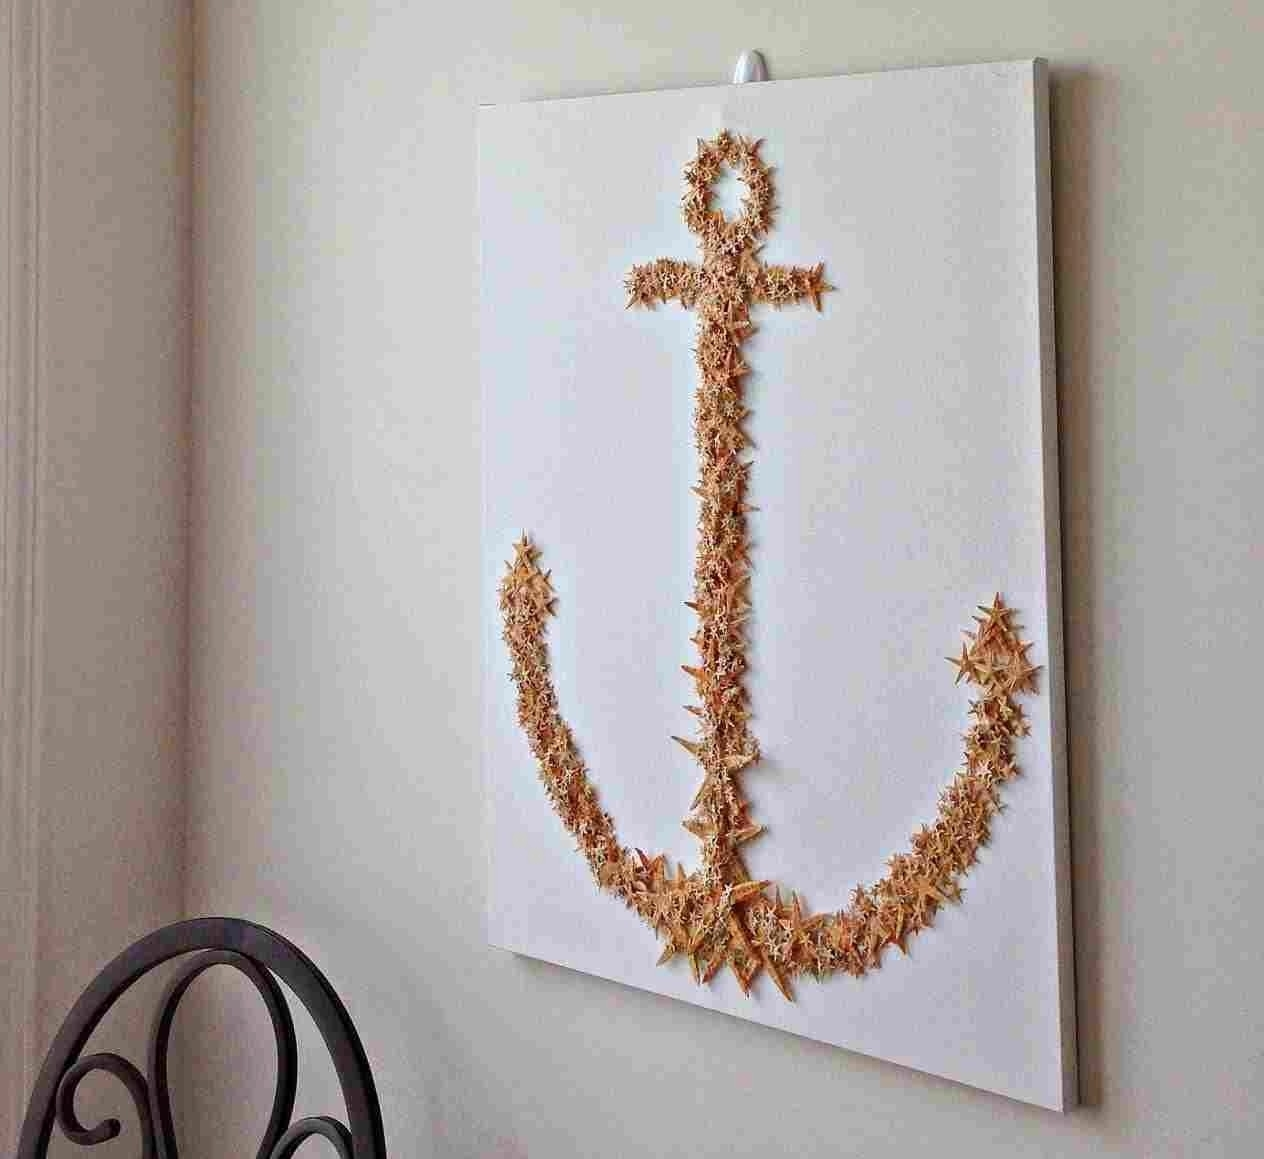 Art Kit Nautical Rhpinterestcom String Diy Anchor Wall Decor inside Anchor Wall Art (Image 7 of 20)